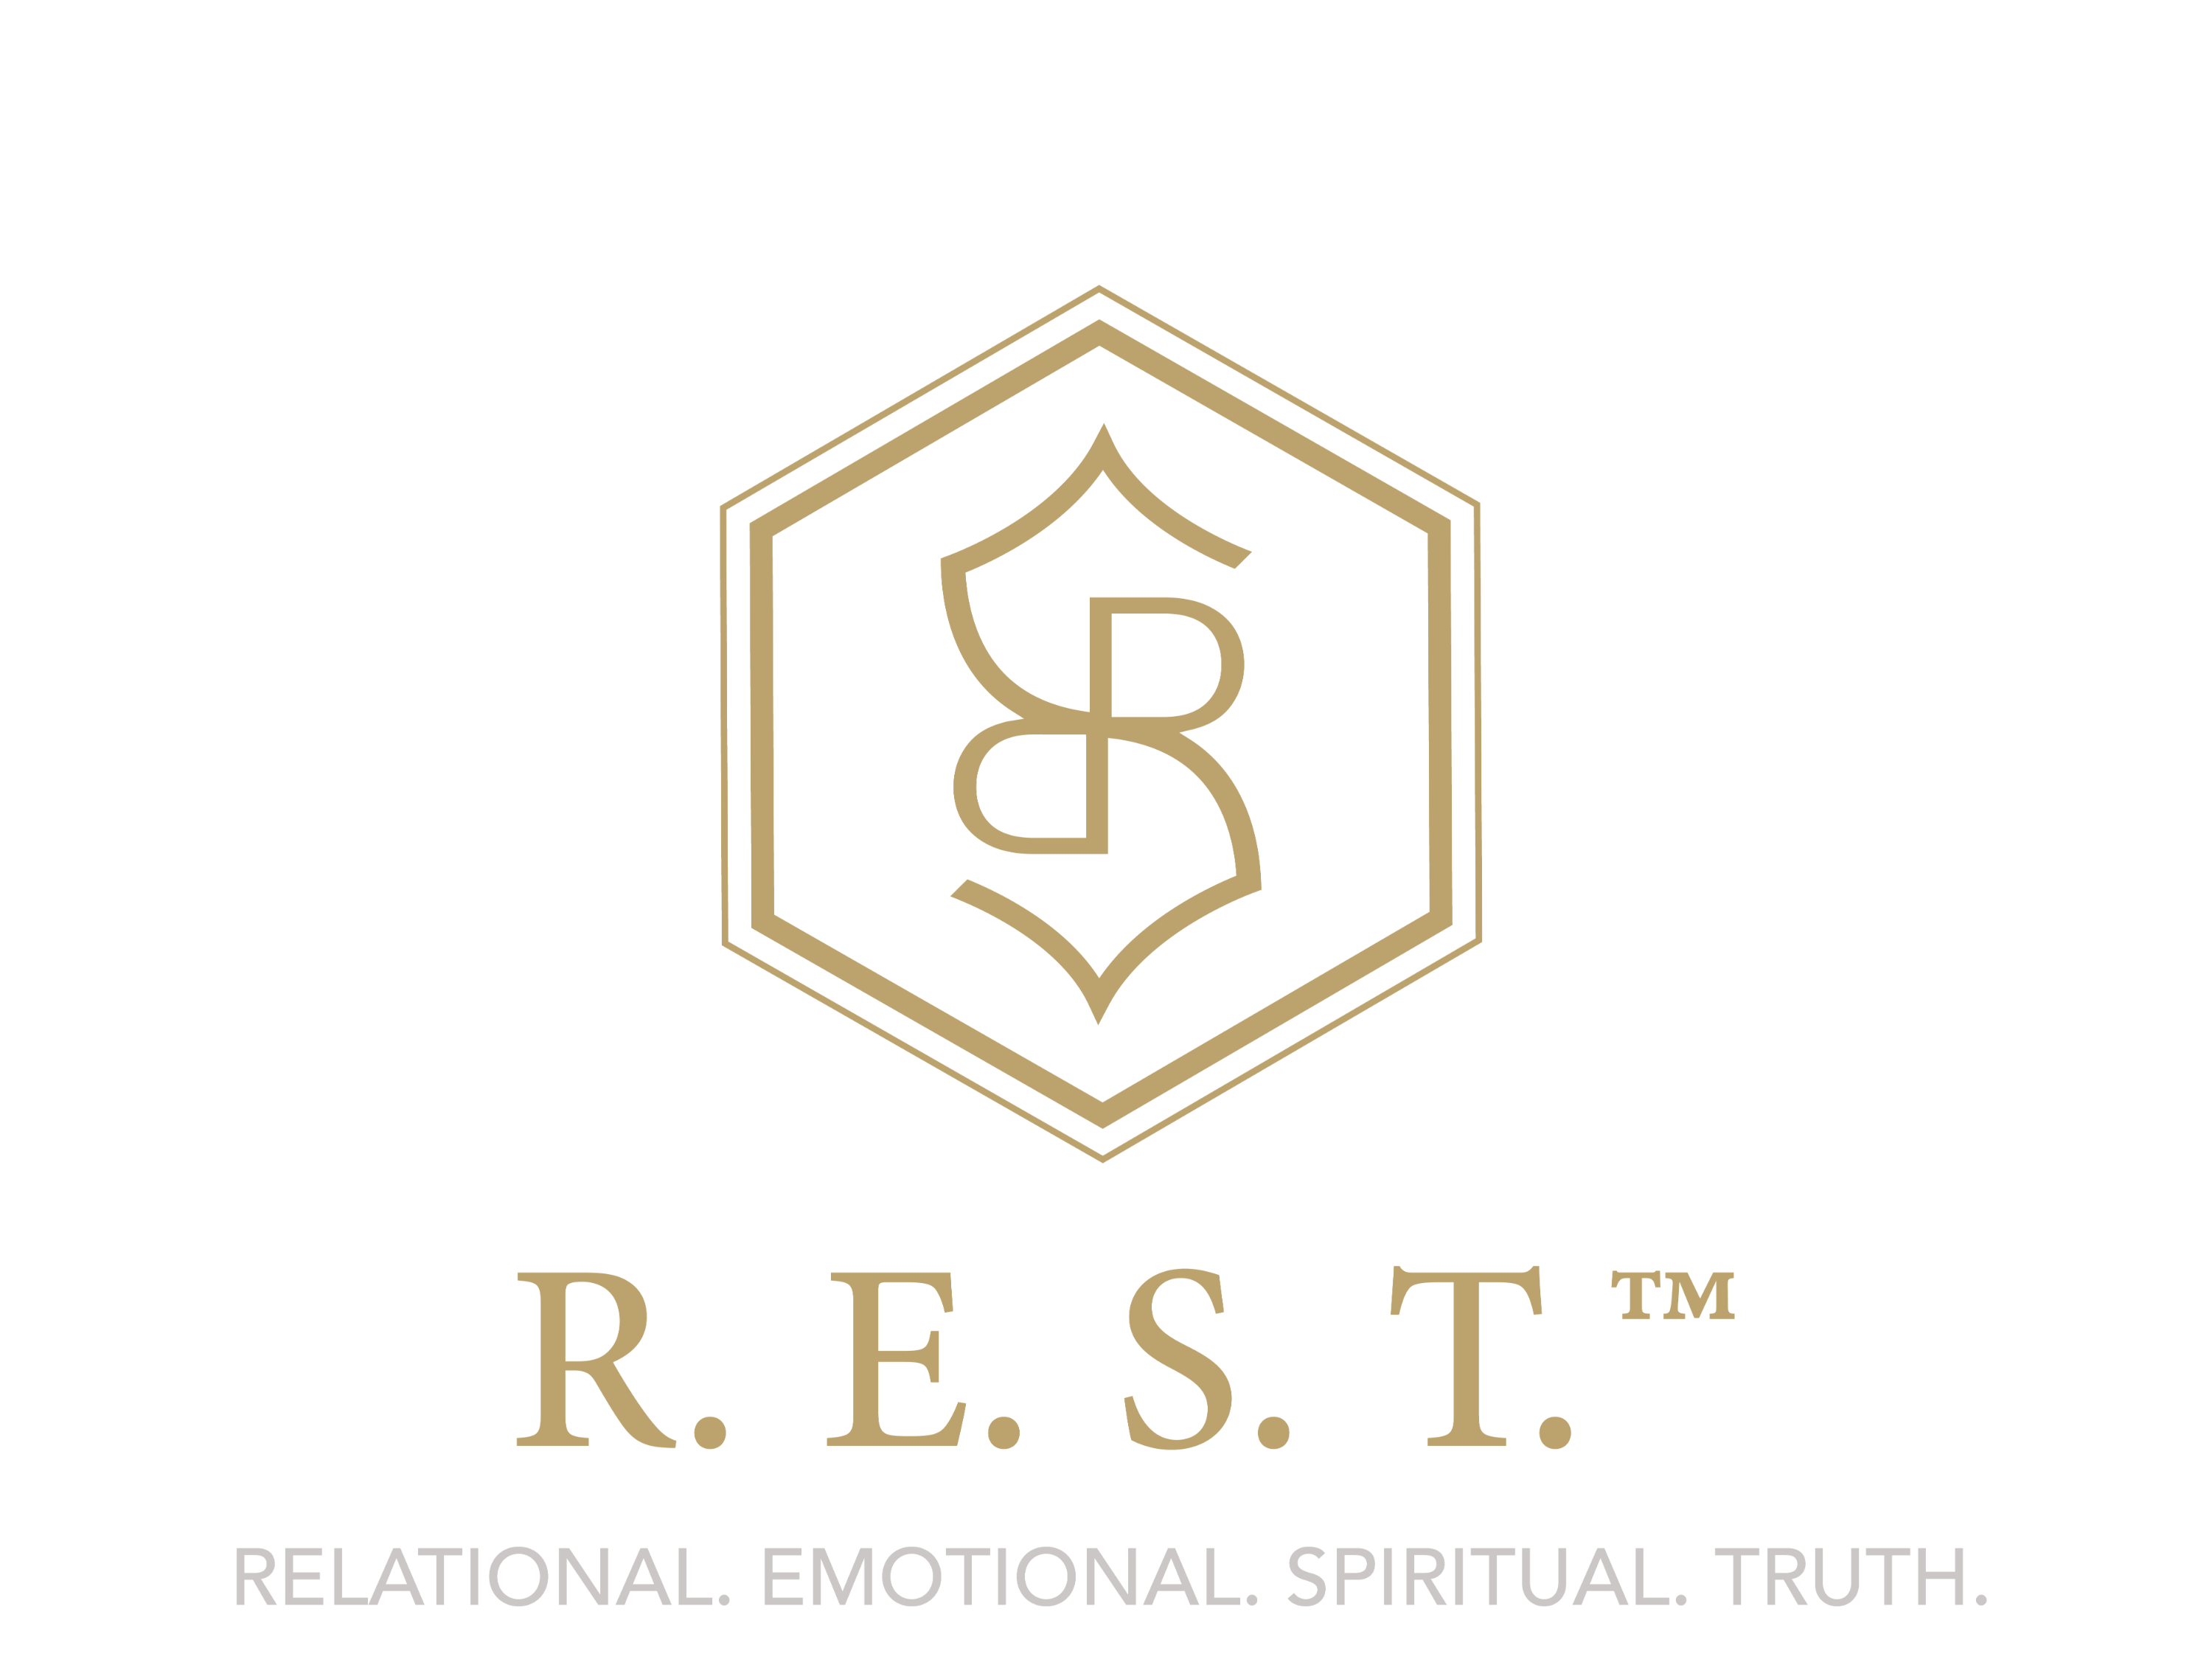 40 Days of R.E.S.T.™